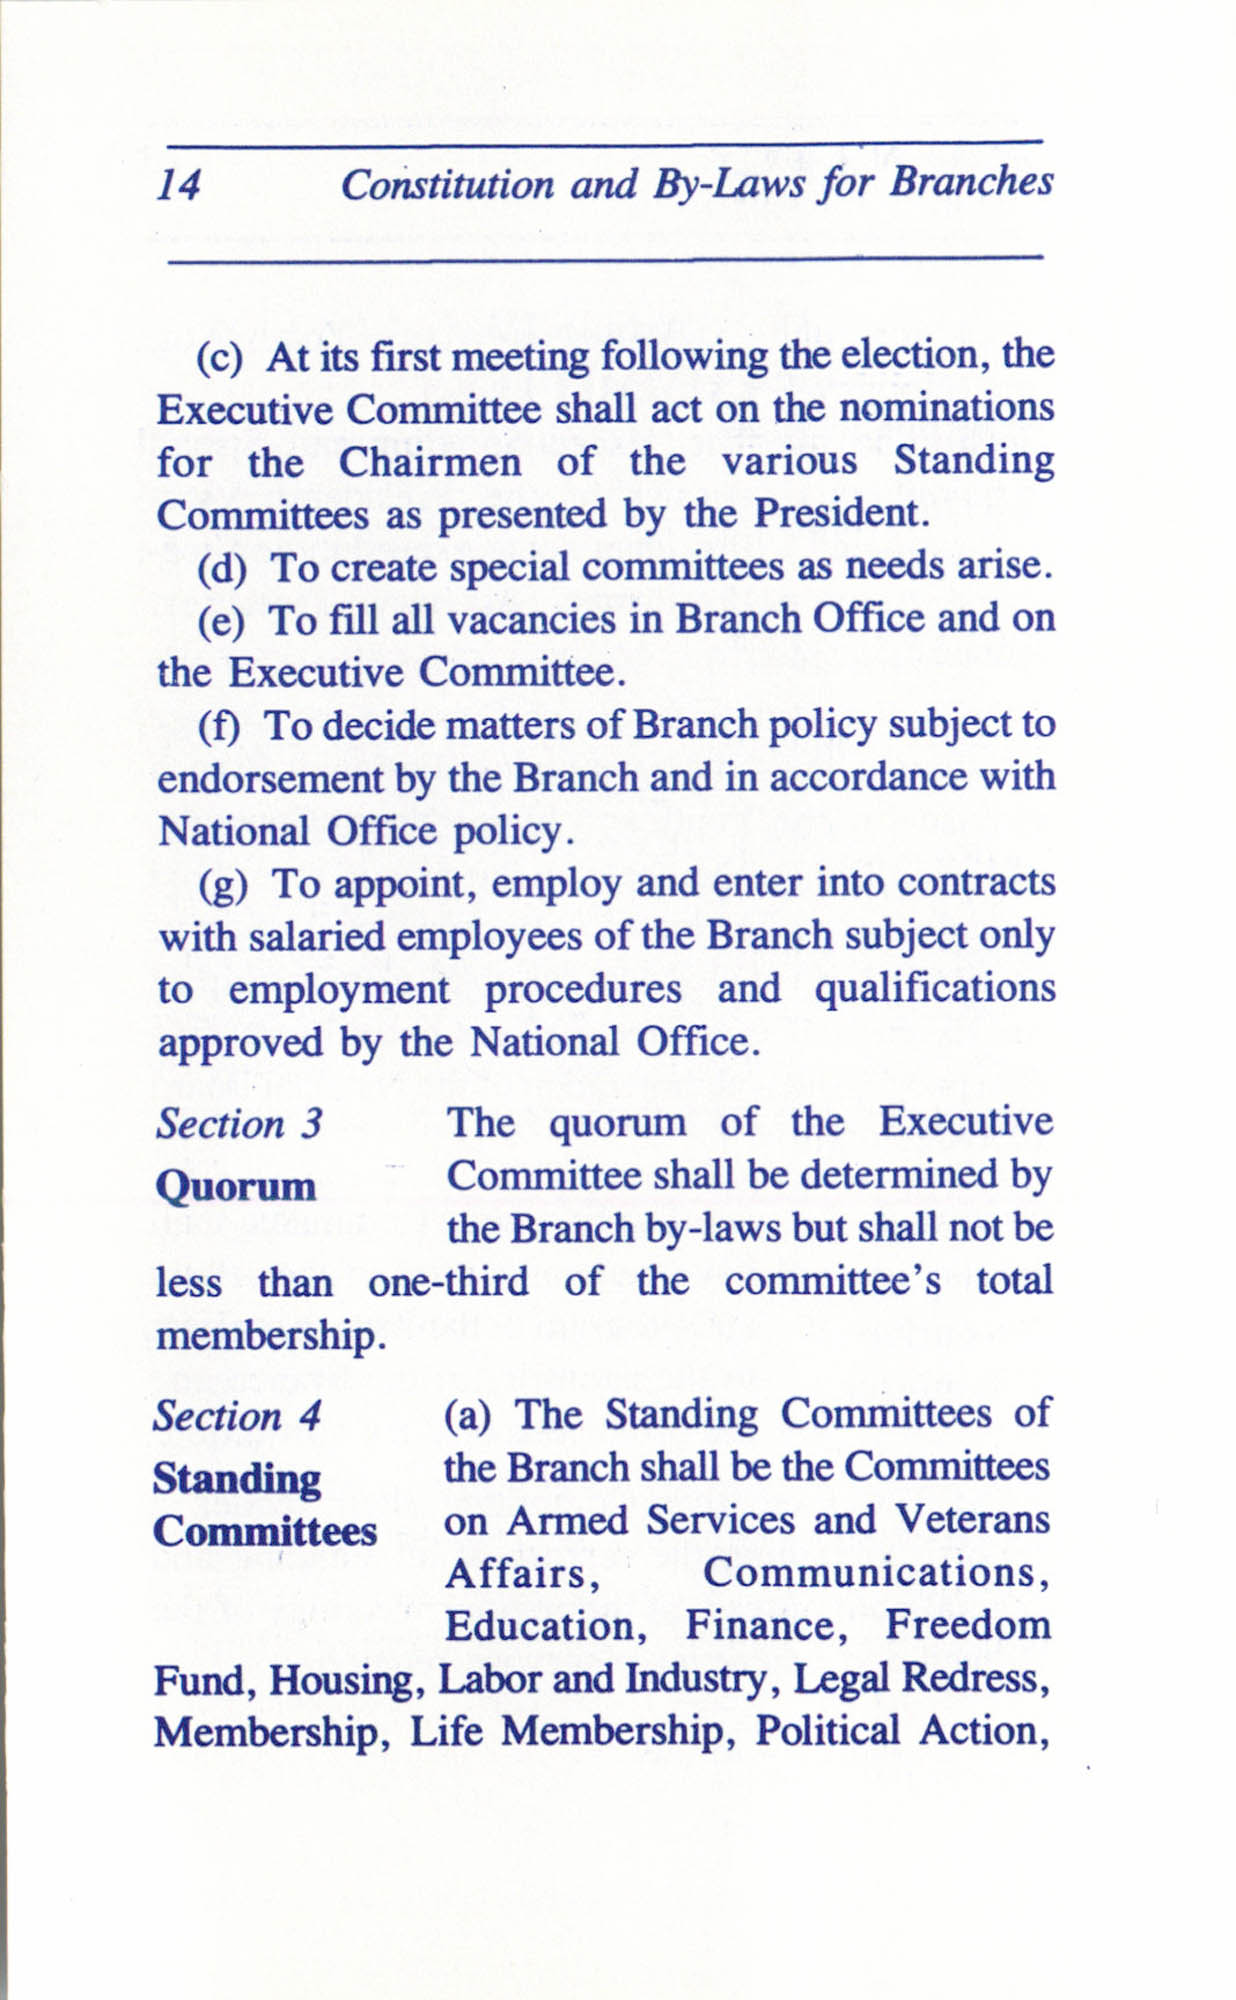 Constitution and By-Laws for Branches of the NAACP, June 1993, Page 14